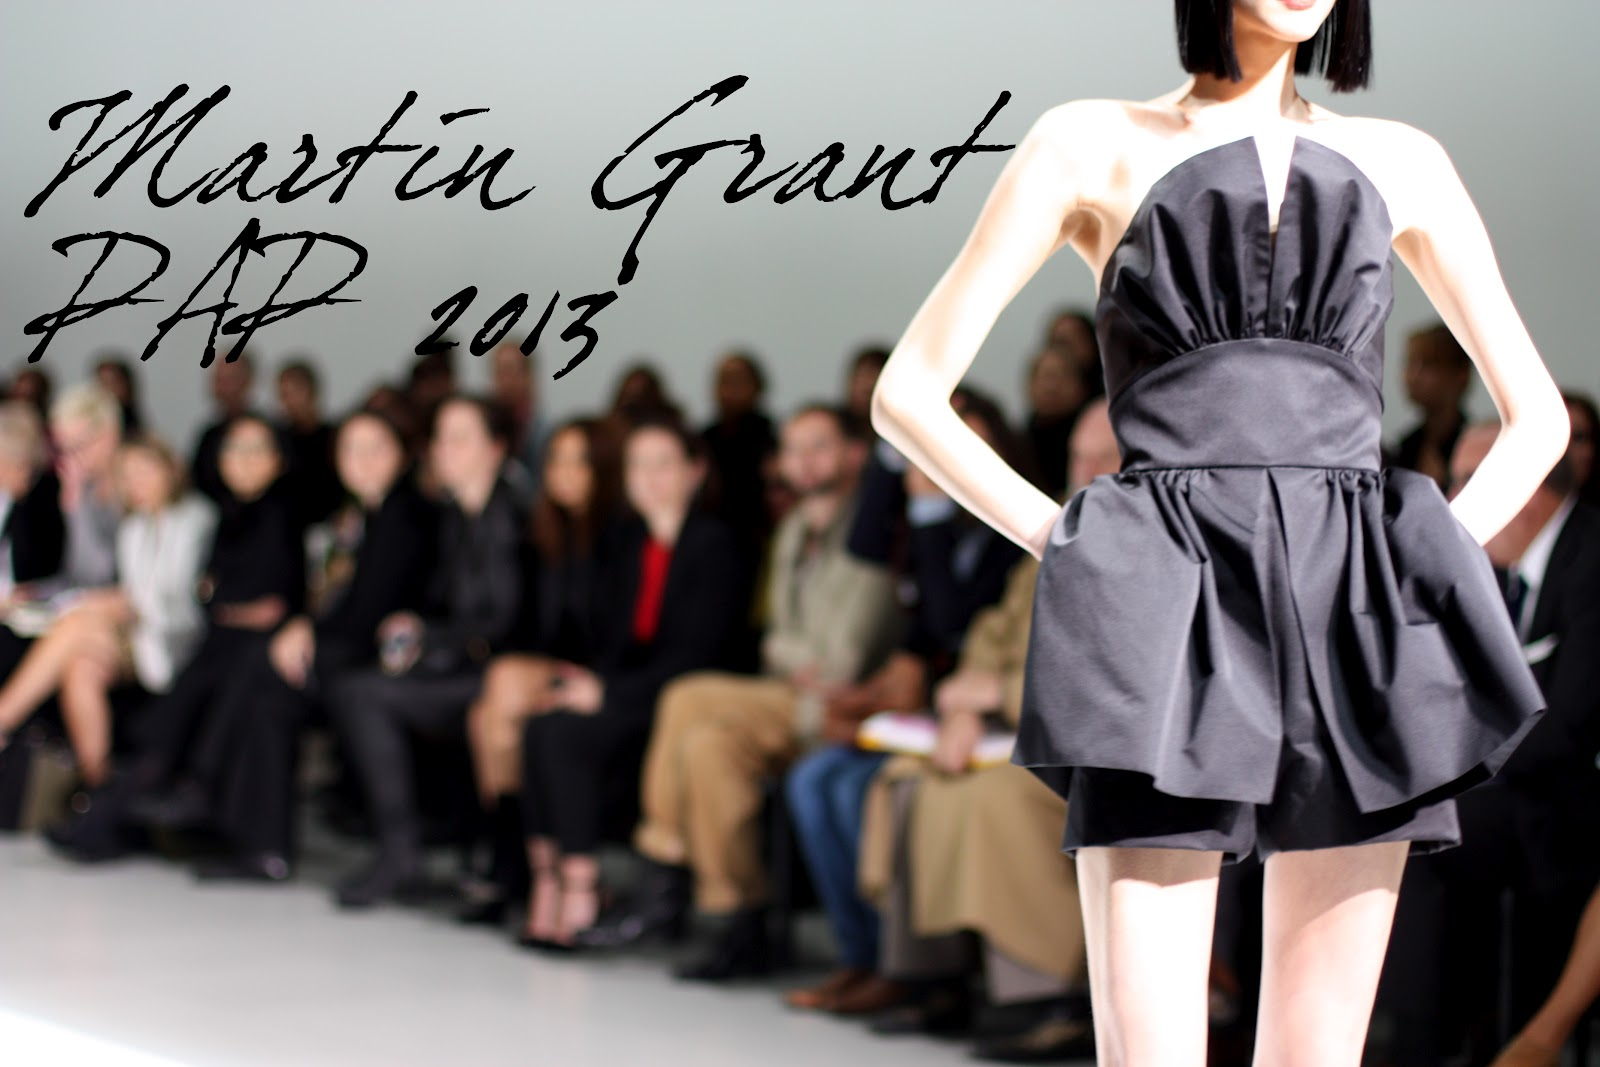 Martin Grant PE 2013 - Blog Mode - Fashion Week